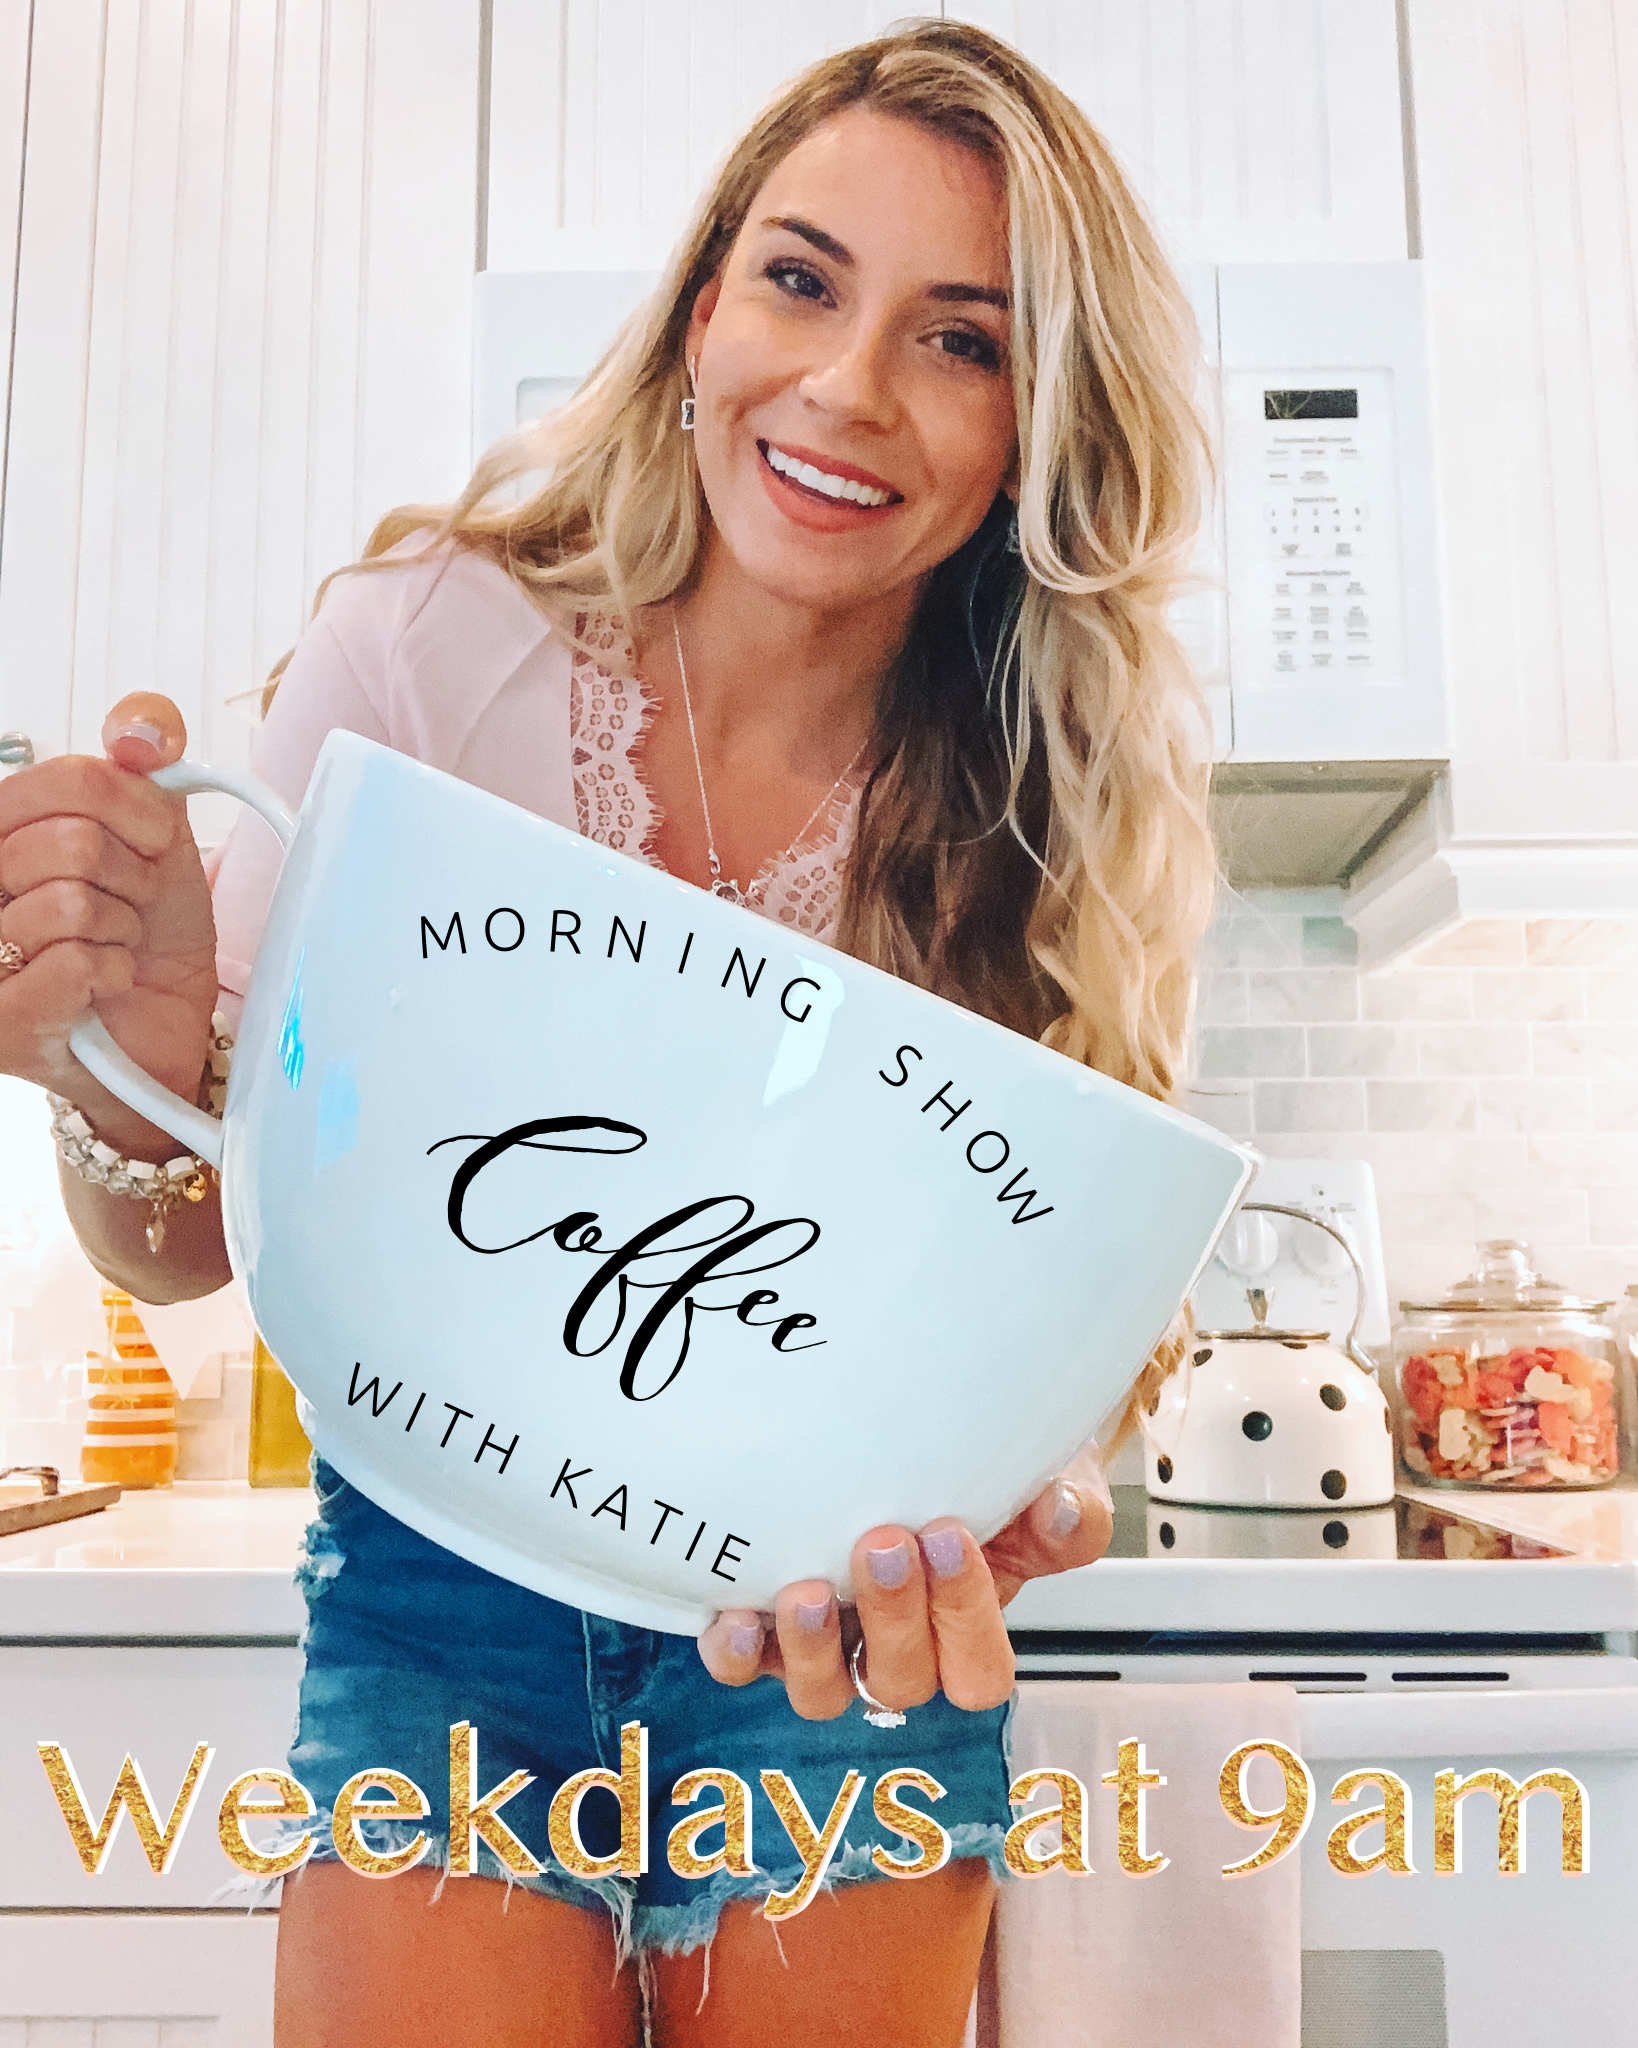 Morning Show with Katie